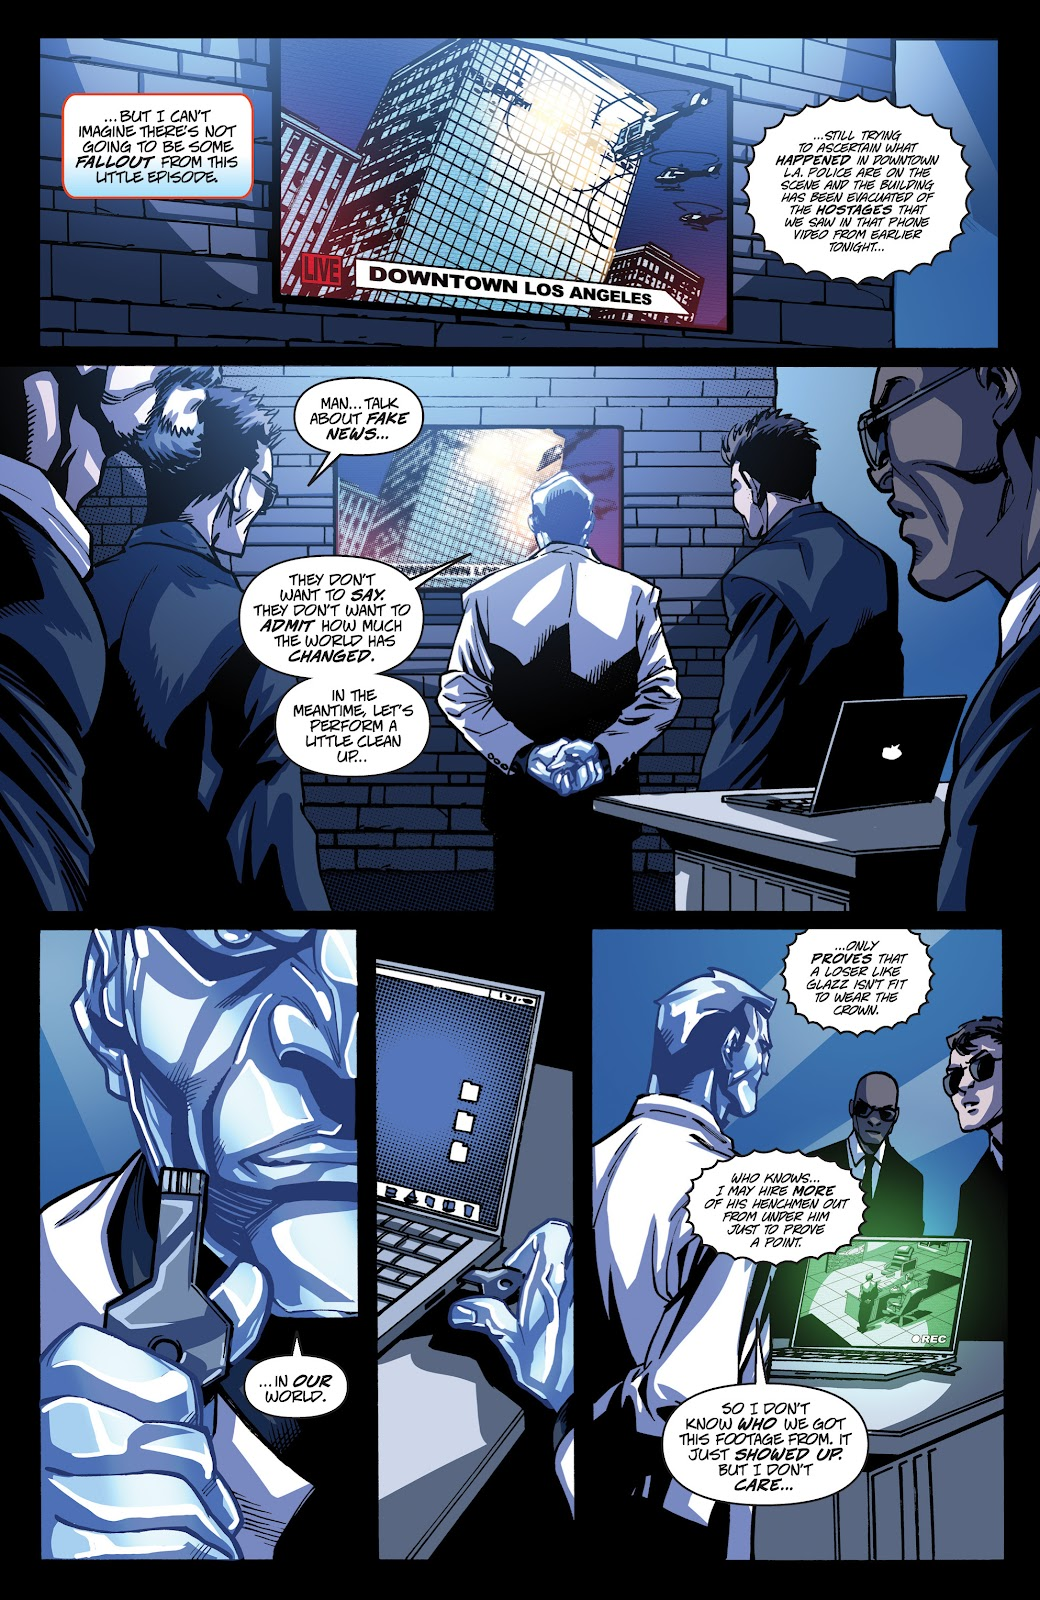 Read online Accell comic -  Issue #19 - 20